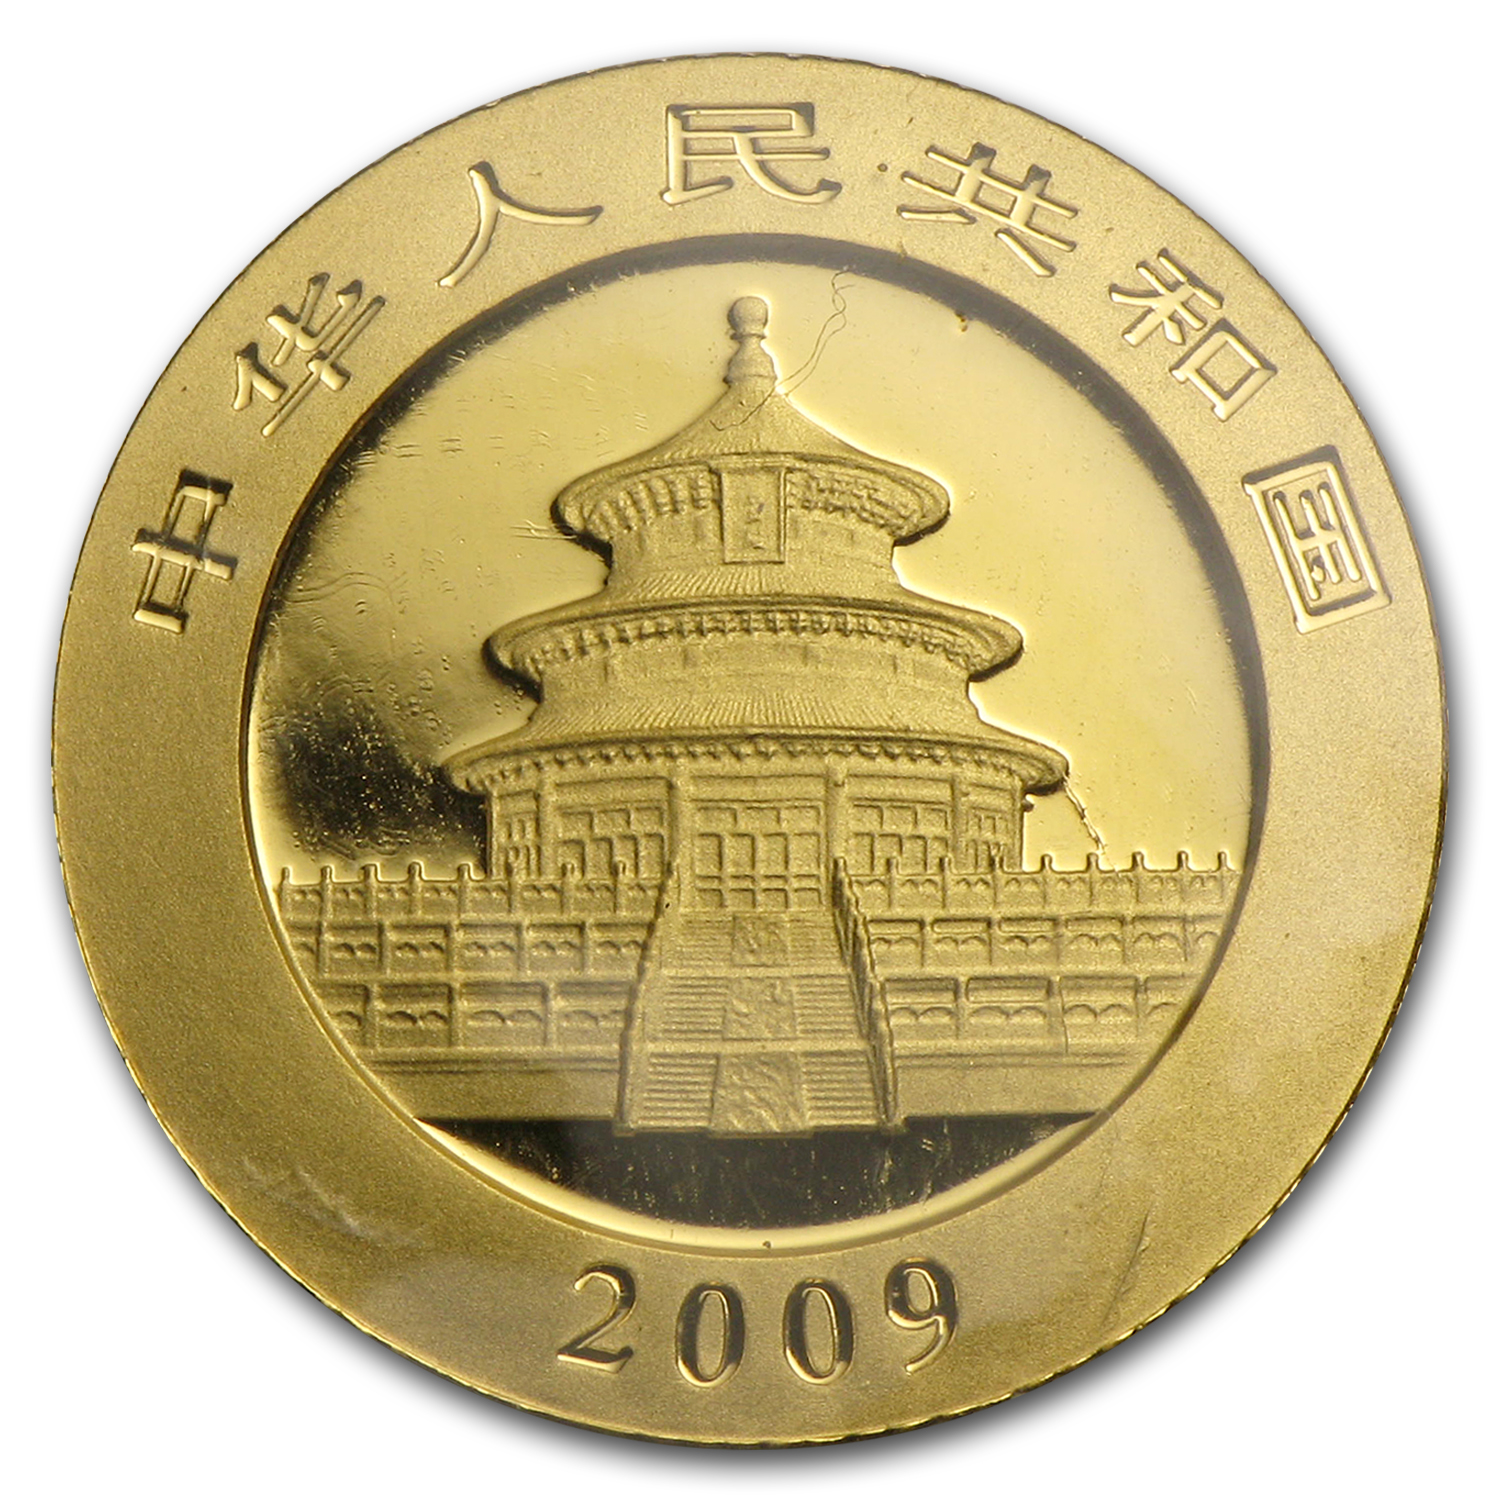 2009 China 1/10 oz Gold Panda BU (Sealed)